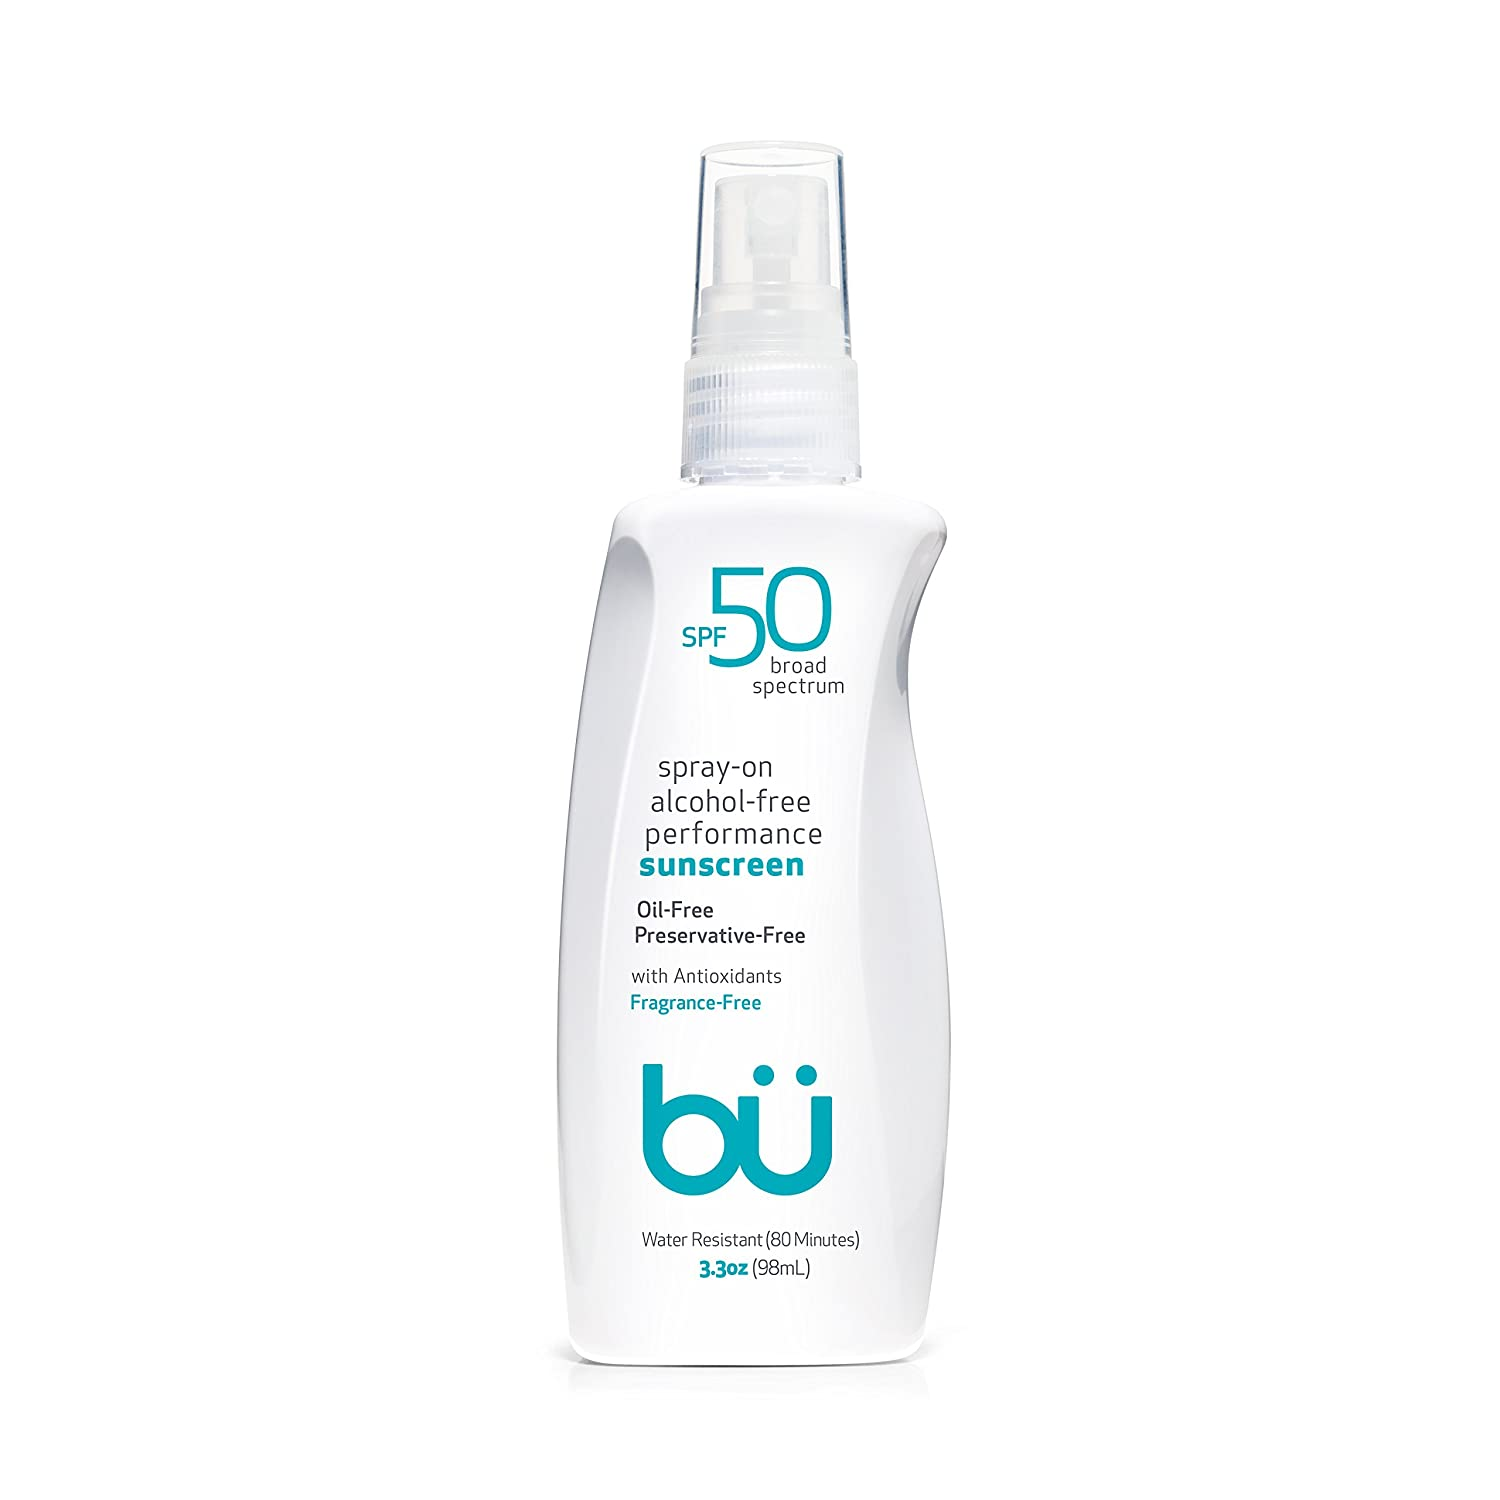 Sunscreen Spray SPF 50 by Bu - Travel Size Organic Biodegradable Sun Block for Sensitive Skin - Oil-Free, Alcohol-Free, Non Comedogenic, Water-Resistant (3.3 Ounce)